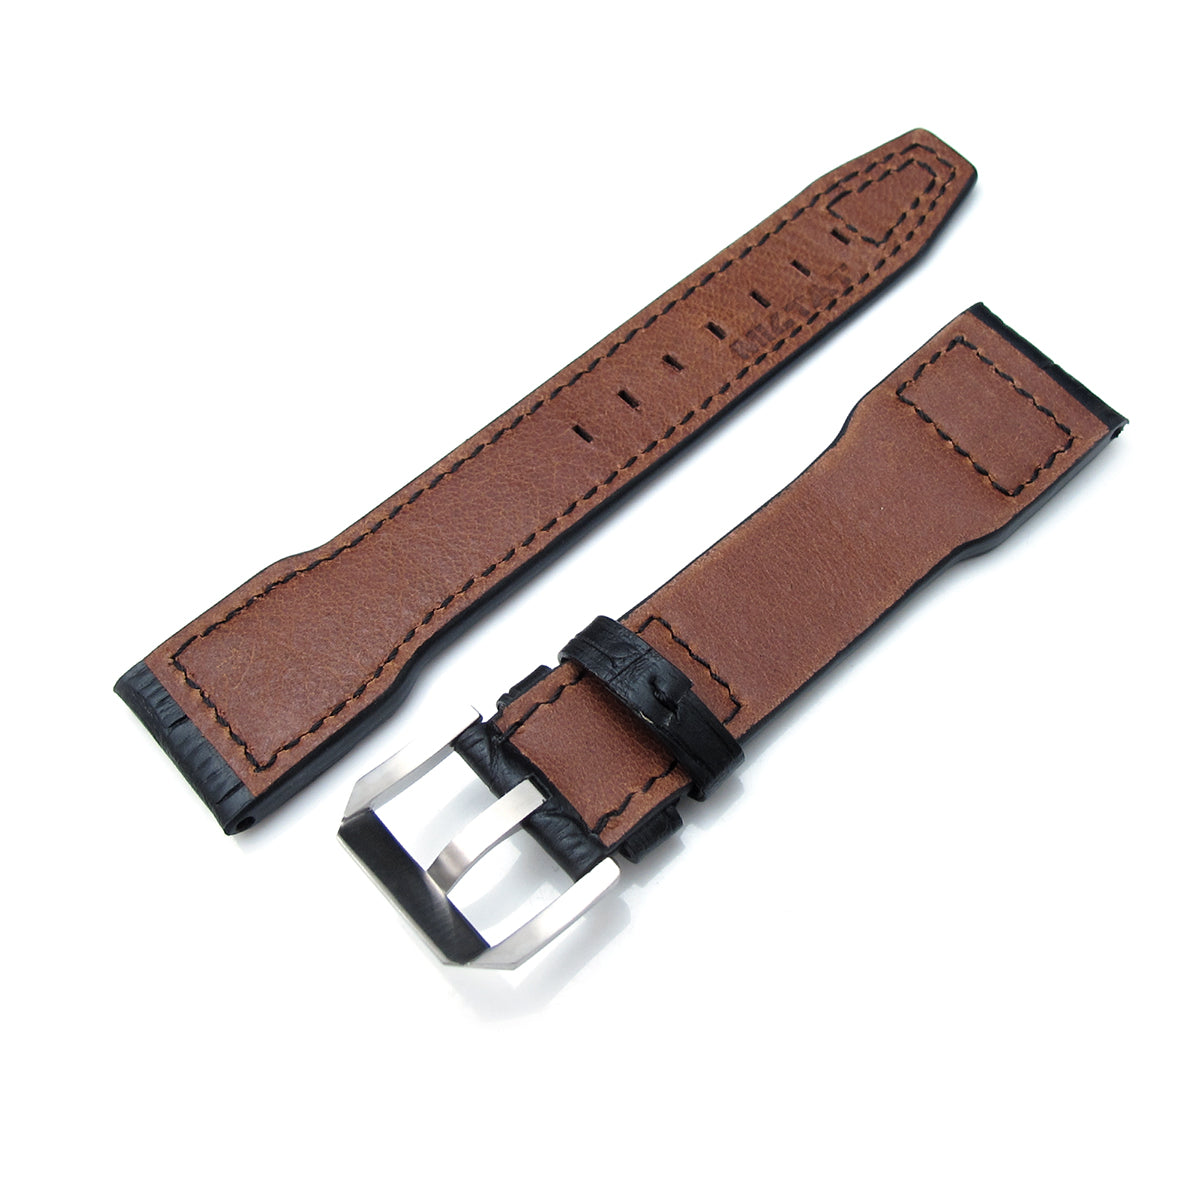 20mm 21mm 22mm IWC Big Pilot 5002 Type CrocoCalf Black Watch Strap Rivet Lug Semi Square Tail Strapcode Watch Bands